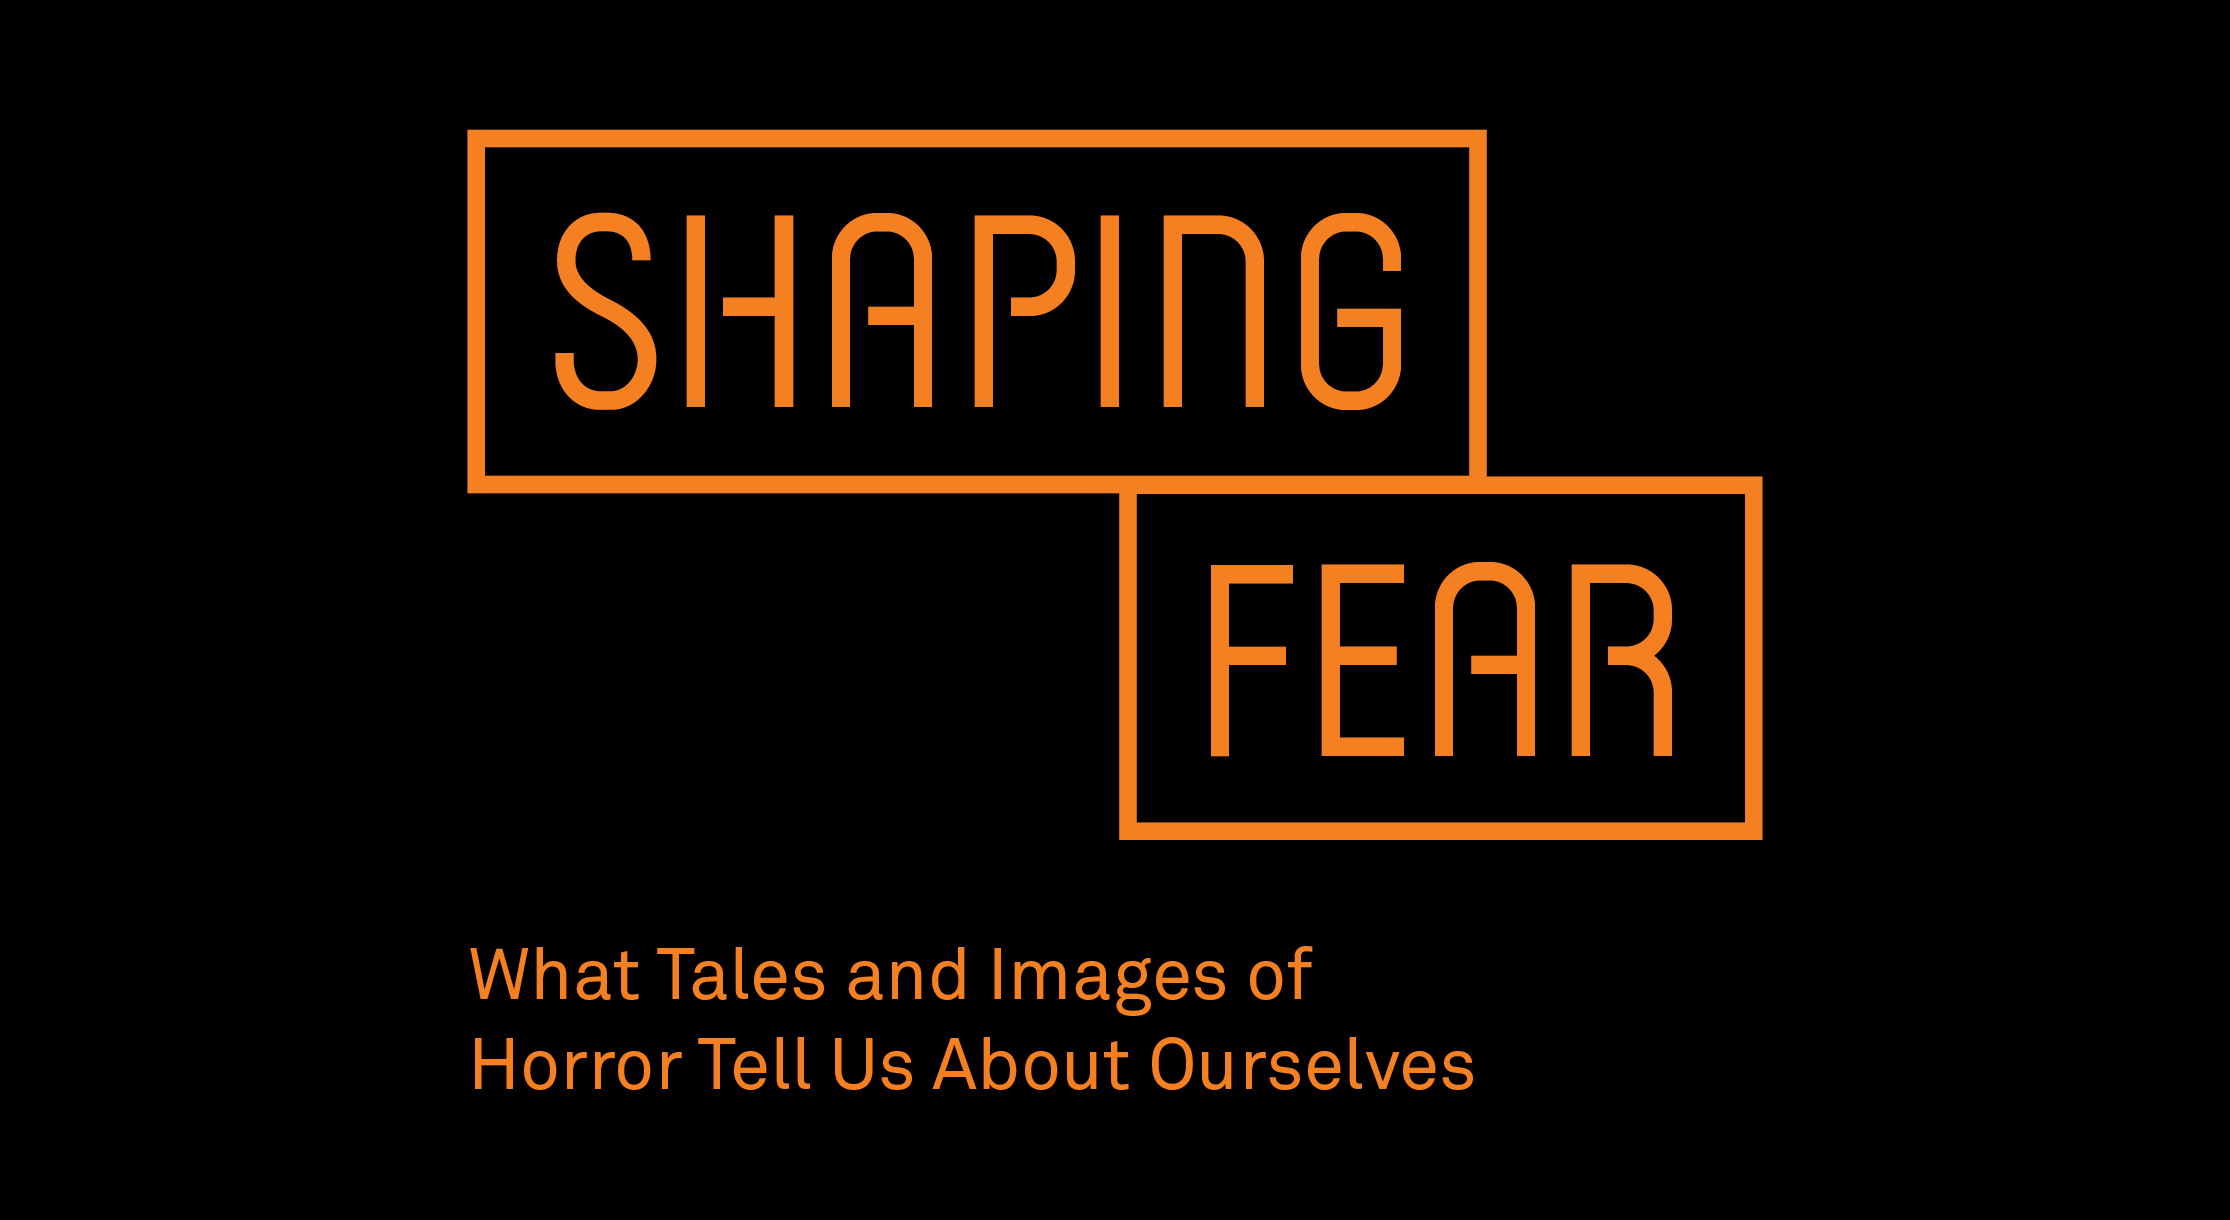 Shaping Fear: What Tales and Images of Horror Tell Us about Ourselves